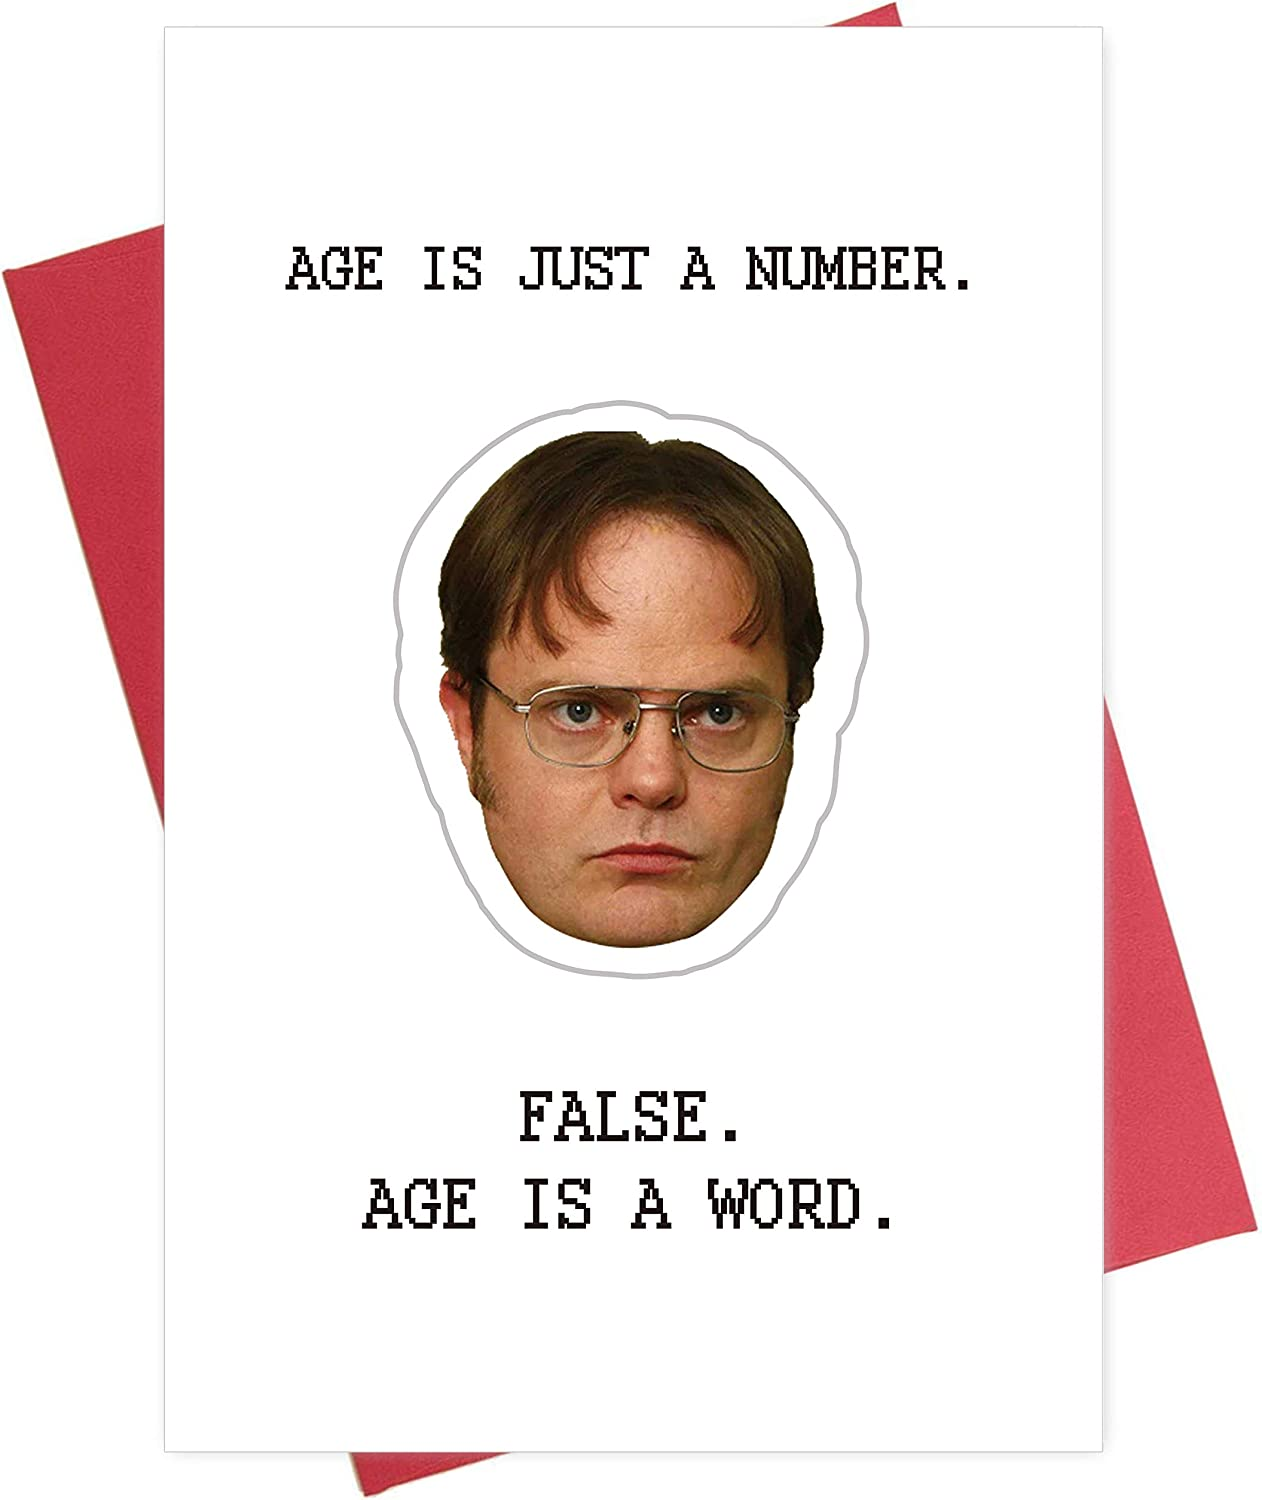 Funny Dwight Birthday Schruce Card, Humorous Greeting Card for Him, Age is Just a Number